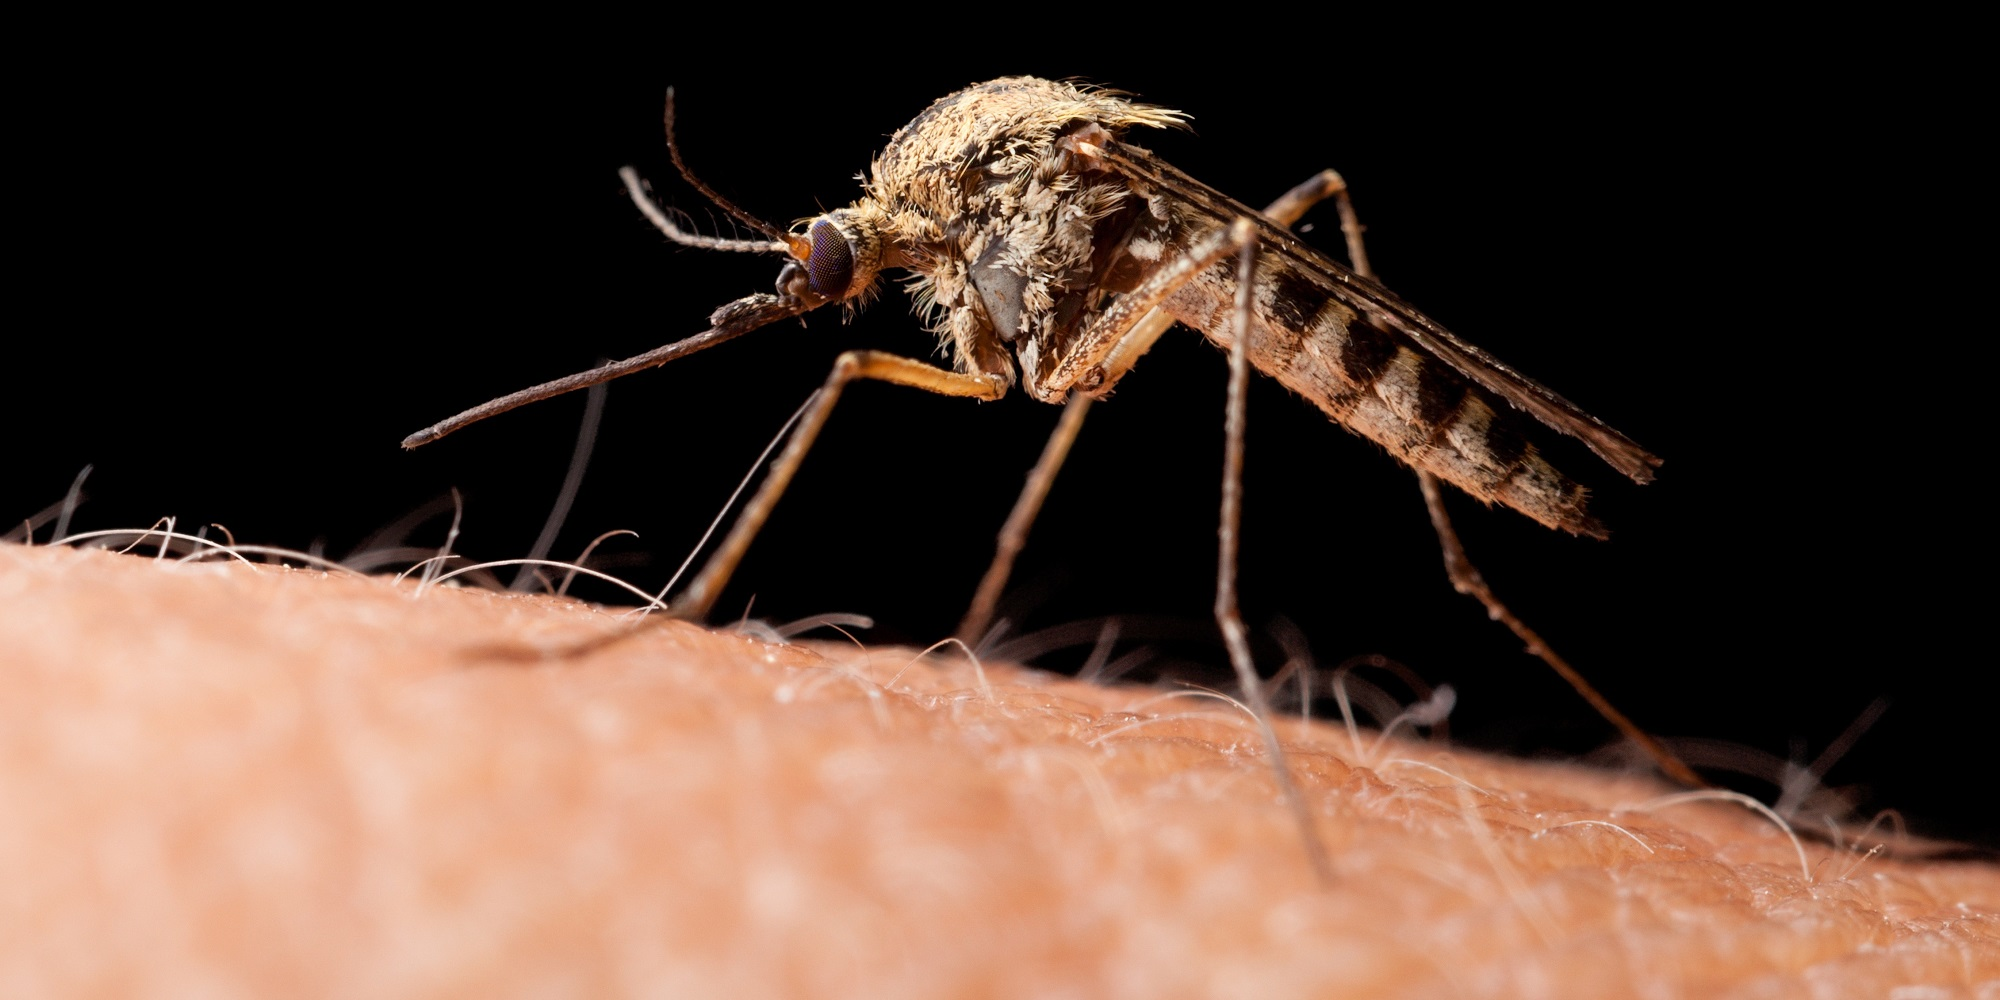 How About Dengue Fever Symptoms, Treatment and Prevention